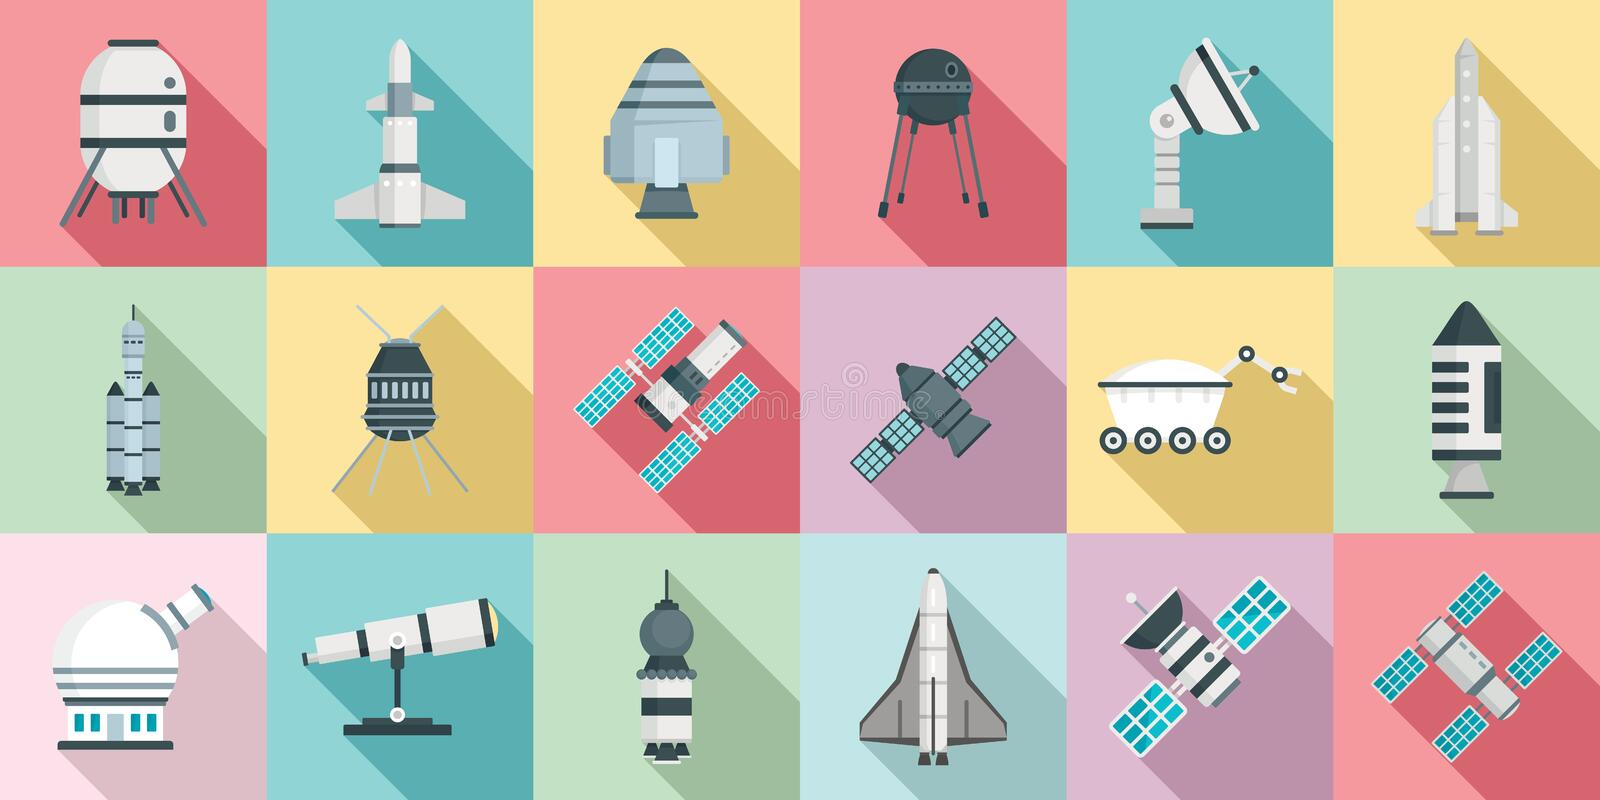 Space research technology icons set, flat style vector illustration